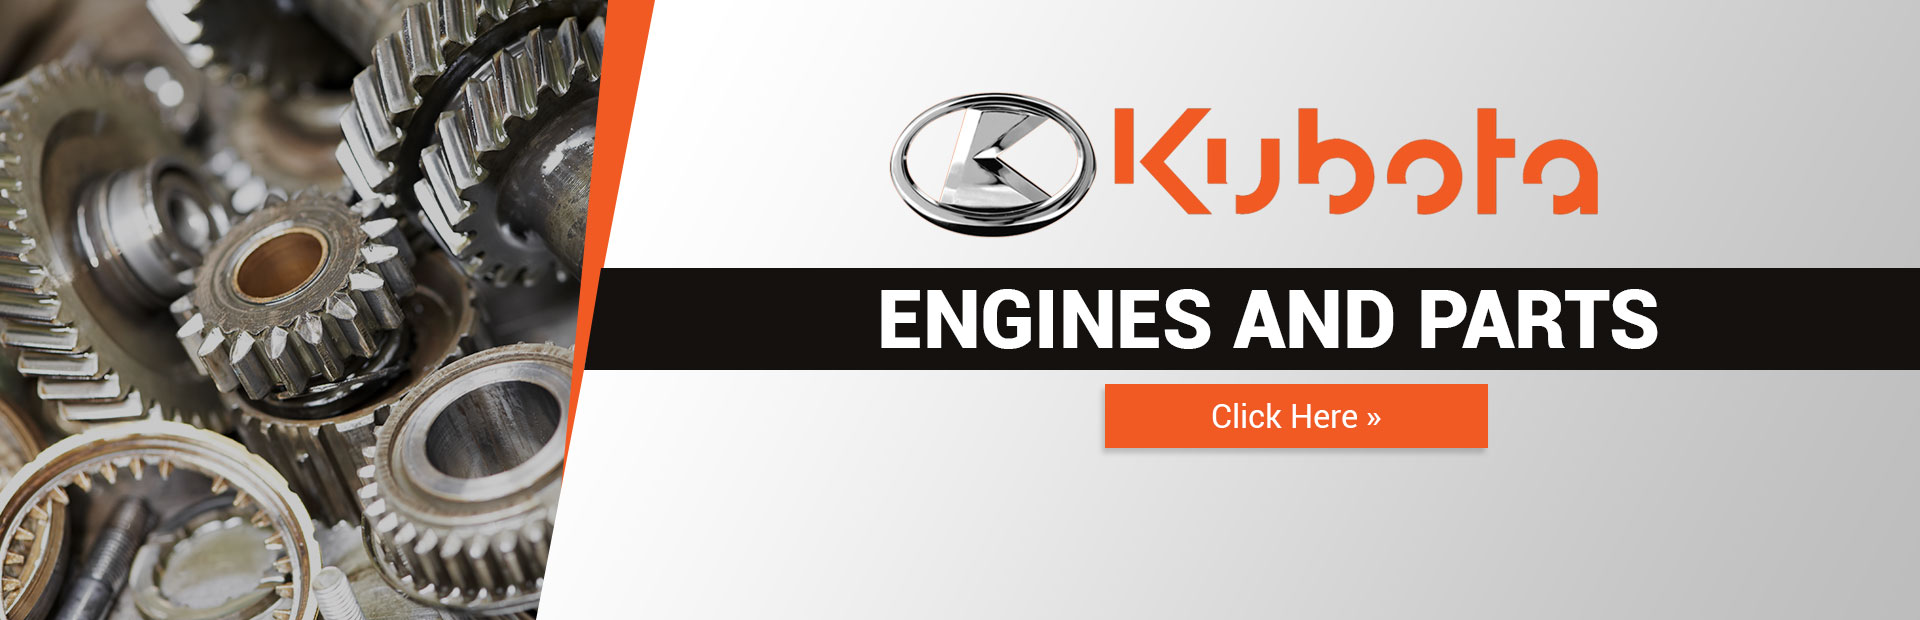 Click here for Kubota engines and parts.